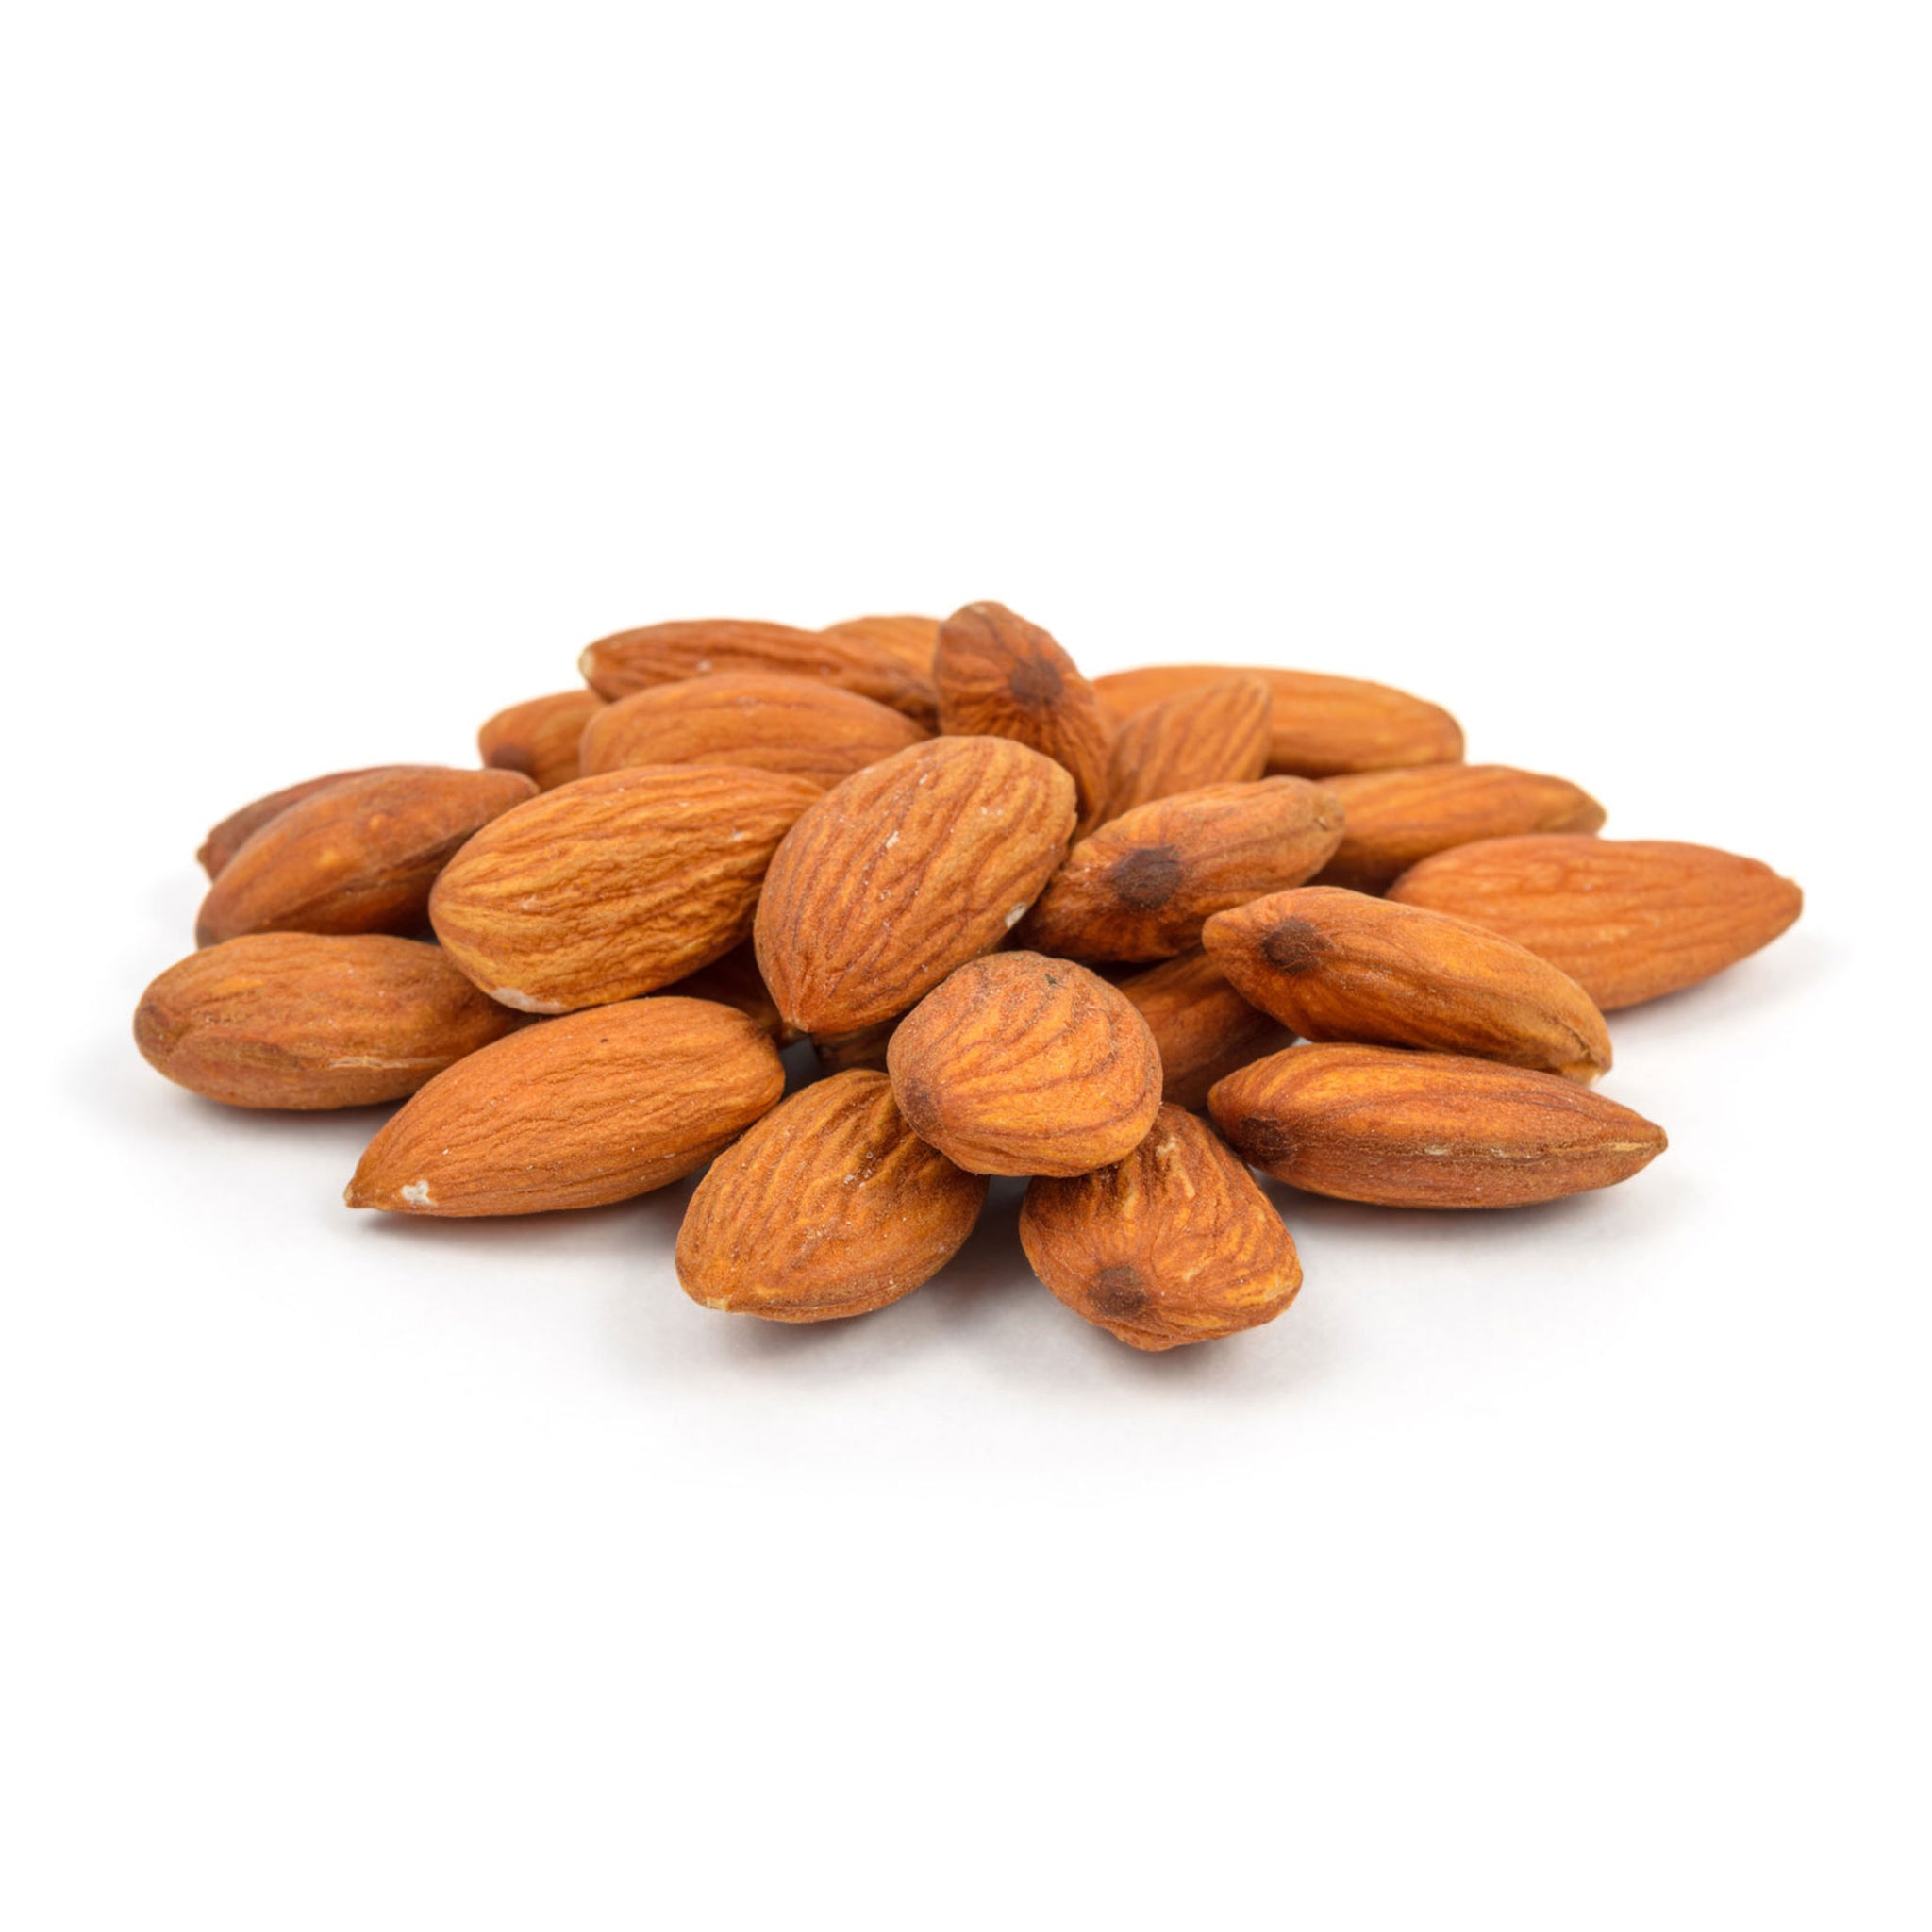 Organic Raw Almonds - Foods Alive